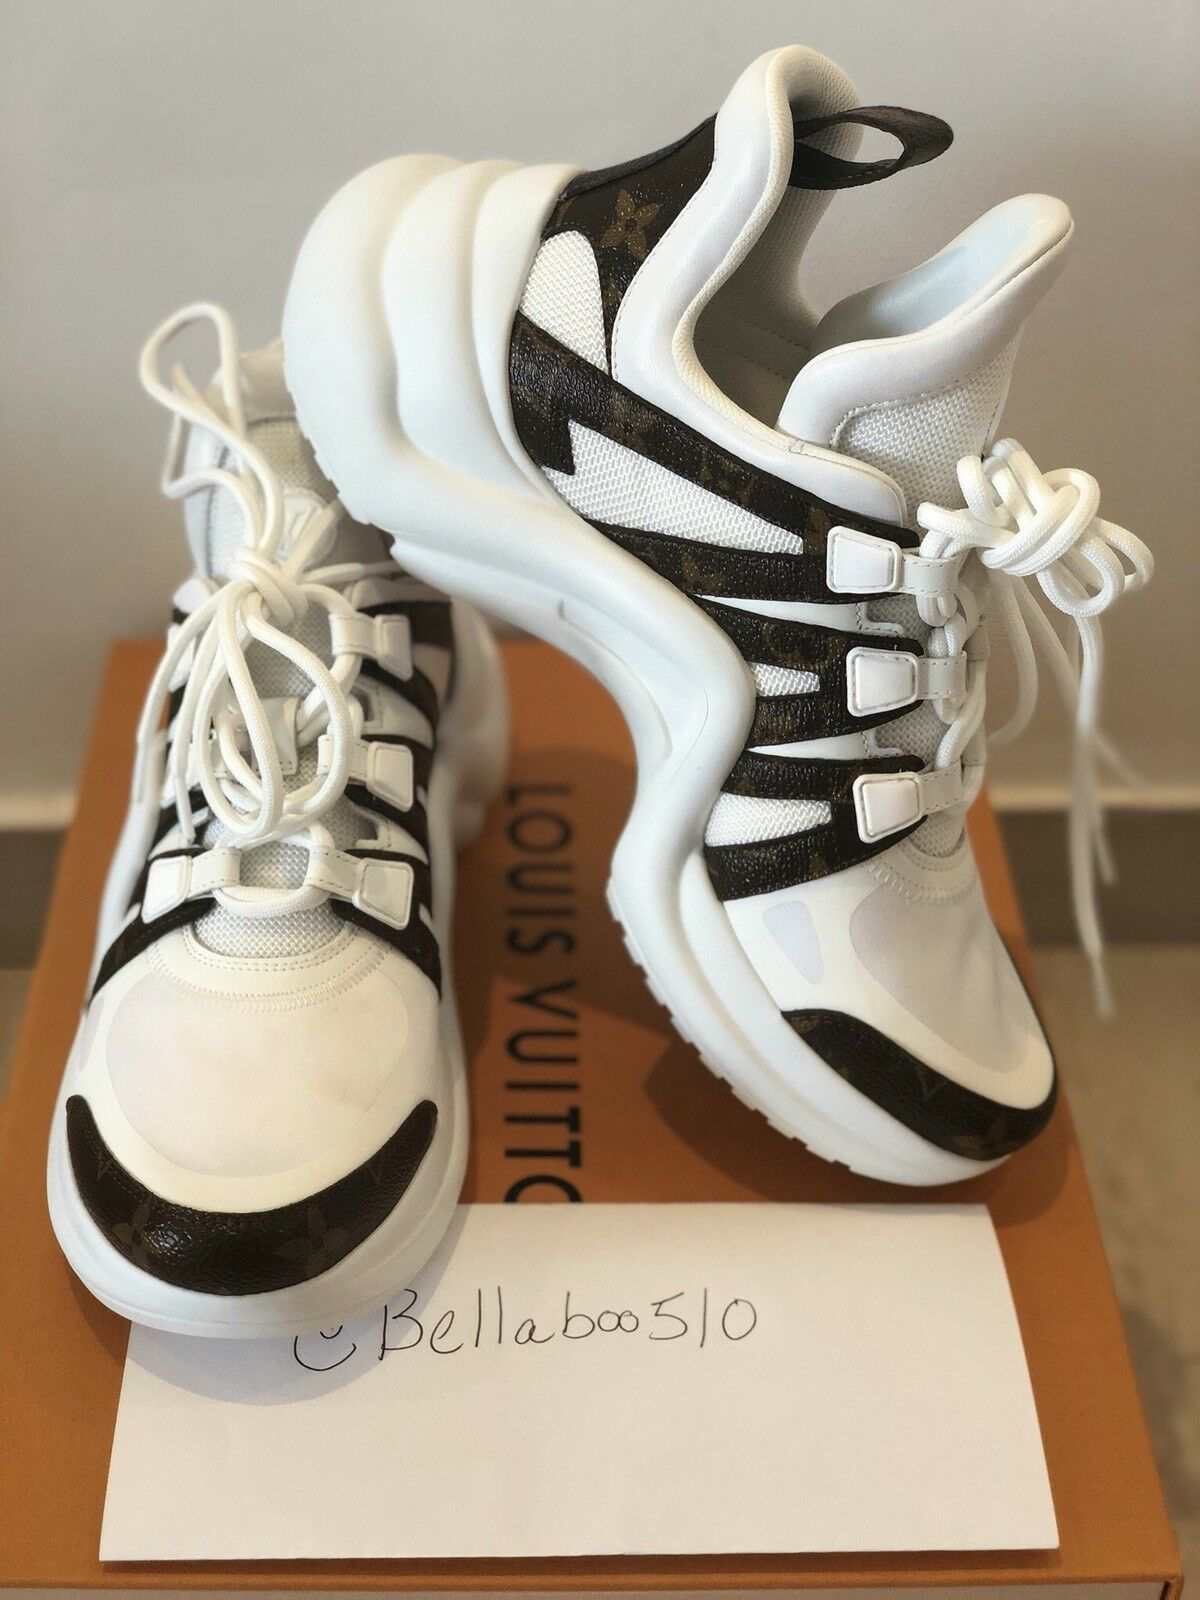 NIB Louis Vuitton Archlight Sneaker in White by Louis Vuitton, available on ebay.co.uk for $1400 Natasha Oakley Shoes Exact Product